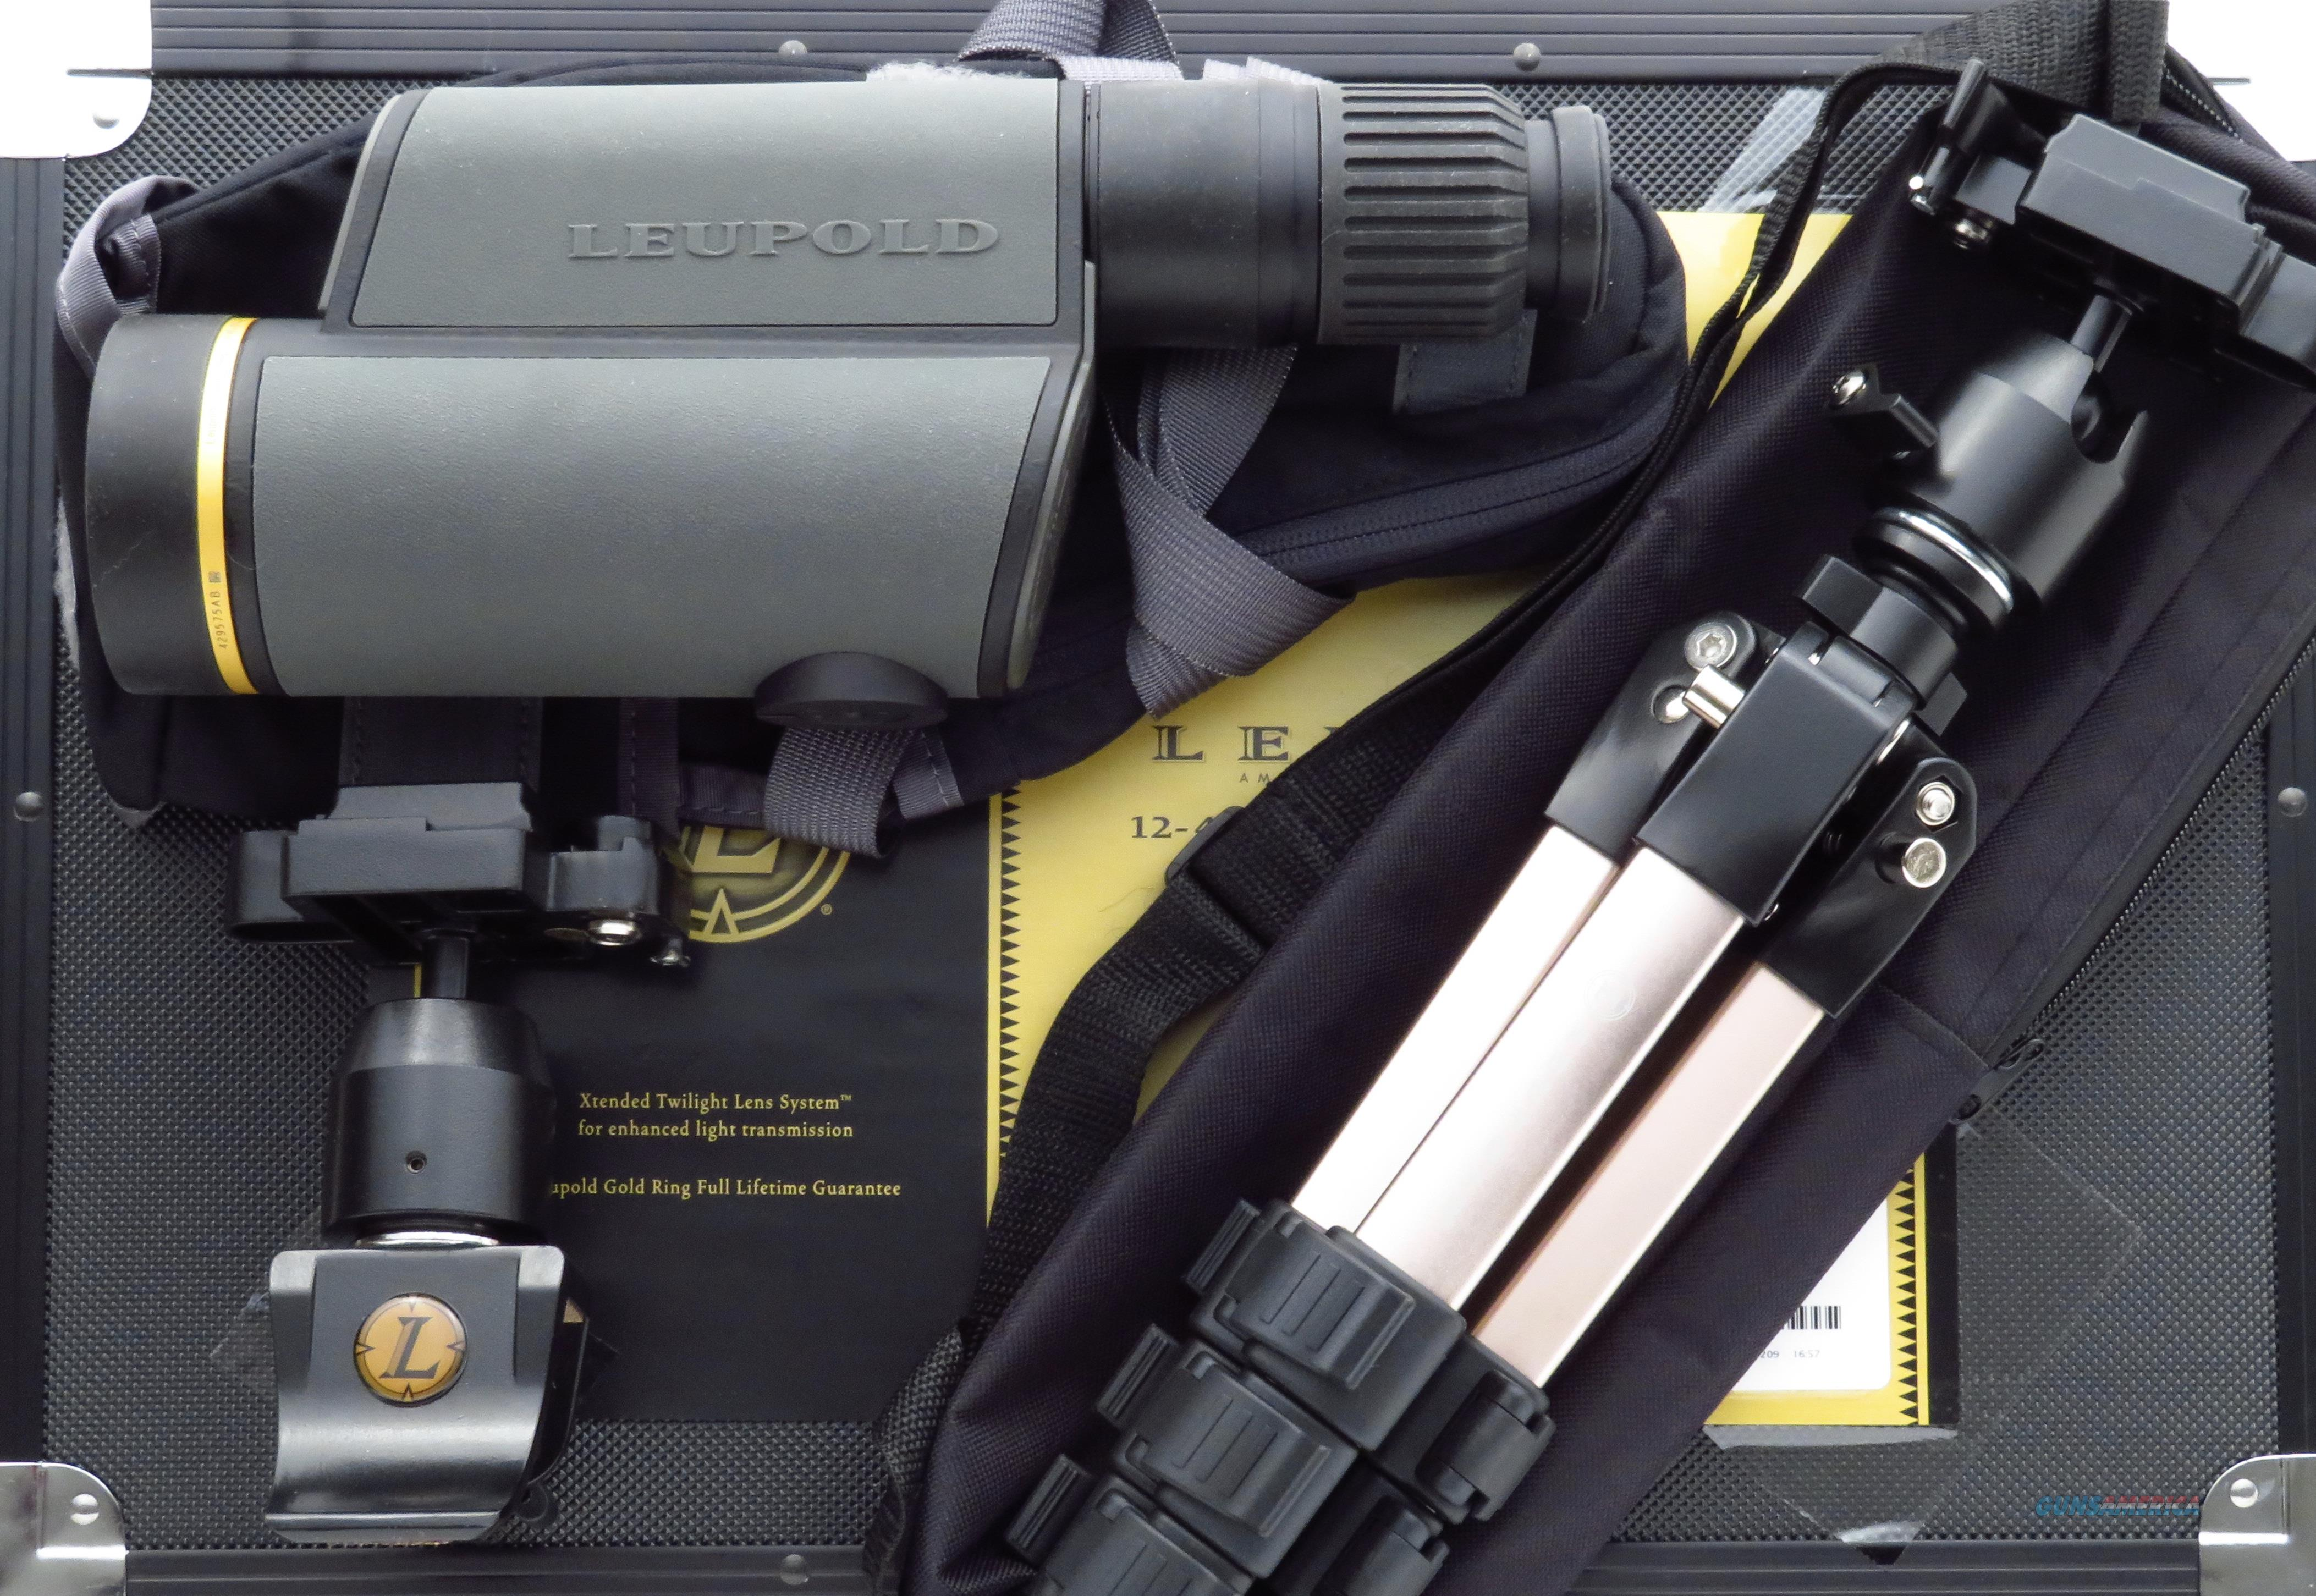 Leupold Golden Ring 12-40x60mm HD Spotting Scope Kit, Shadow Gray, 99%   Non-Guns > Scopes/Mounts/Rings & Optics > Non-Scope Optics > Other